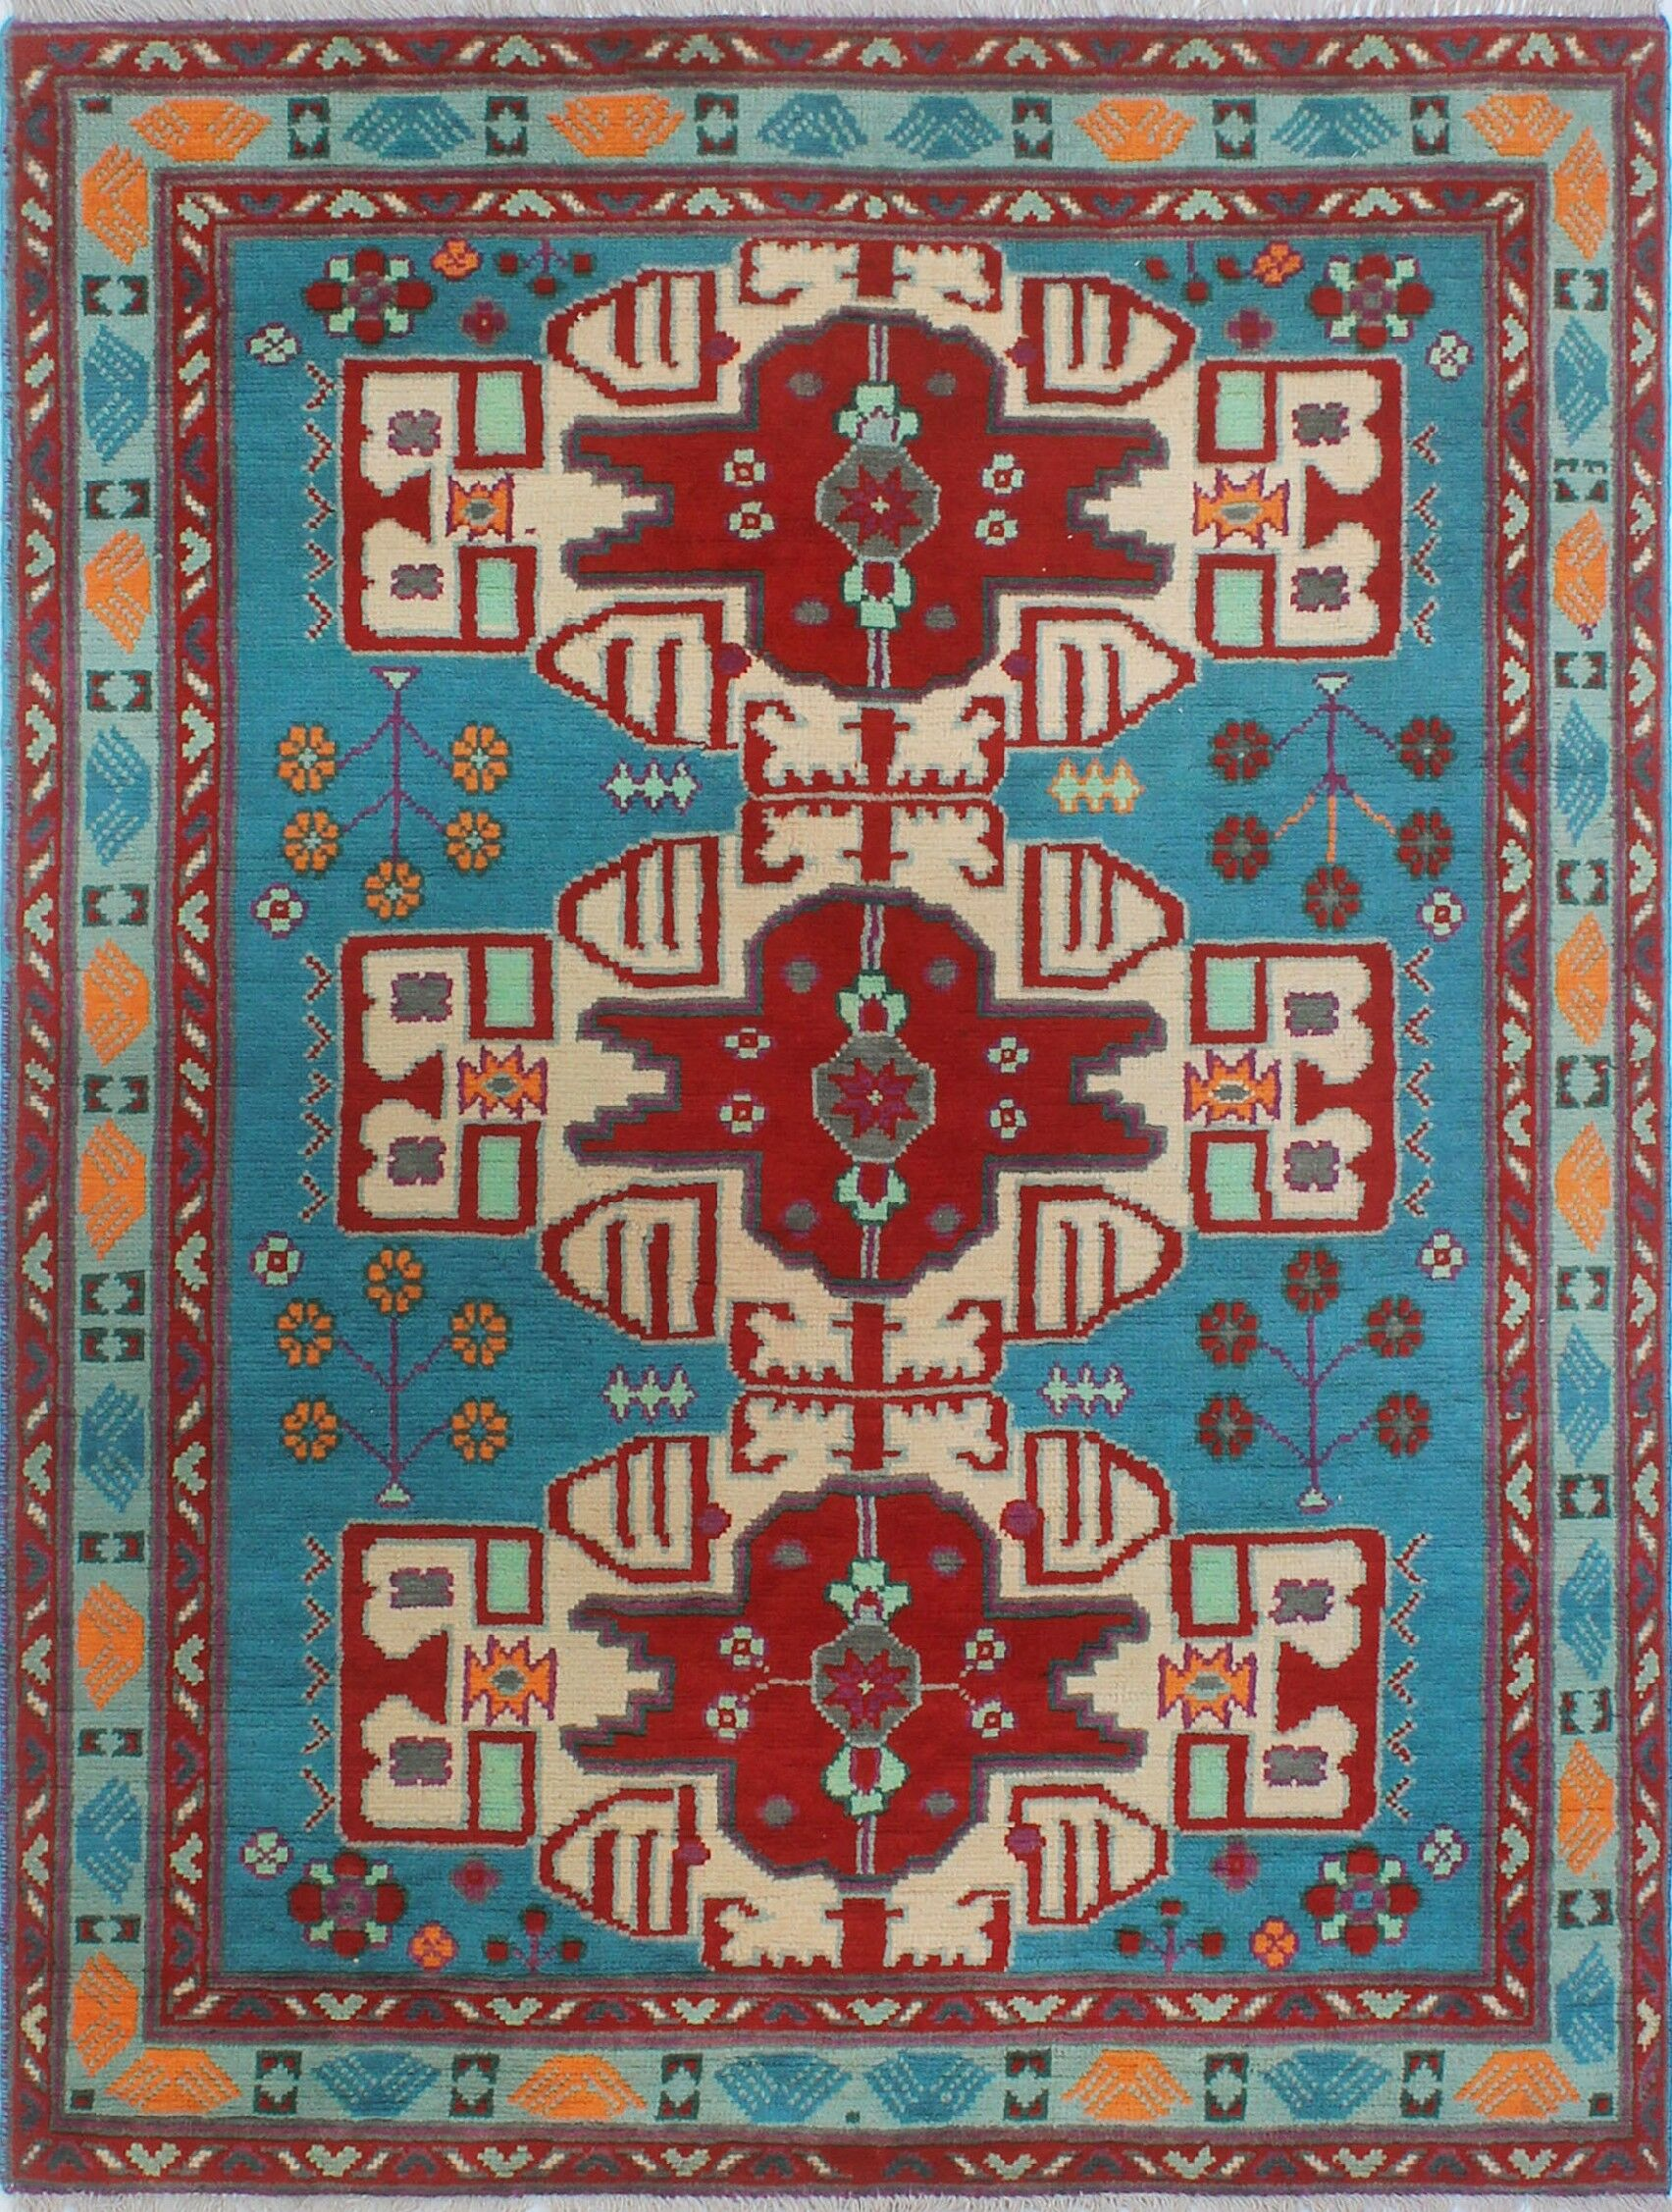 Oneybrook Hand-Knotted Wool Blue Area Rug